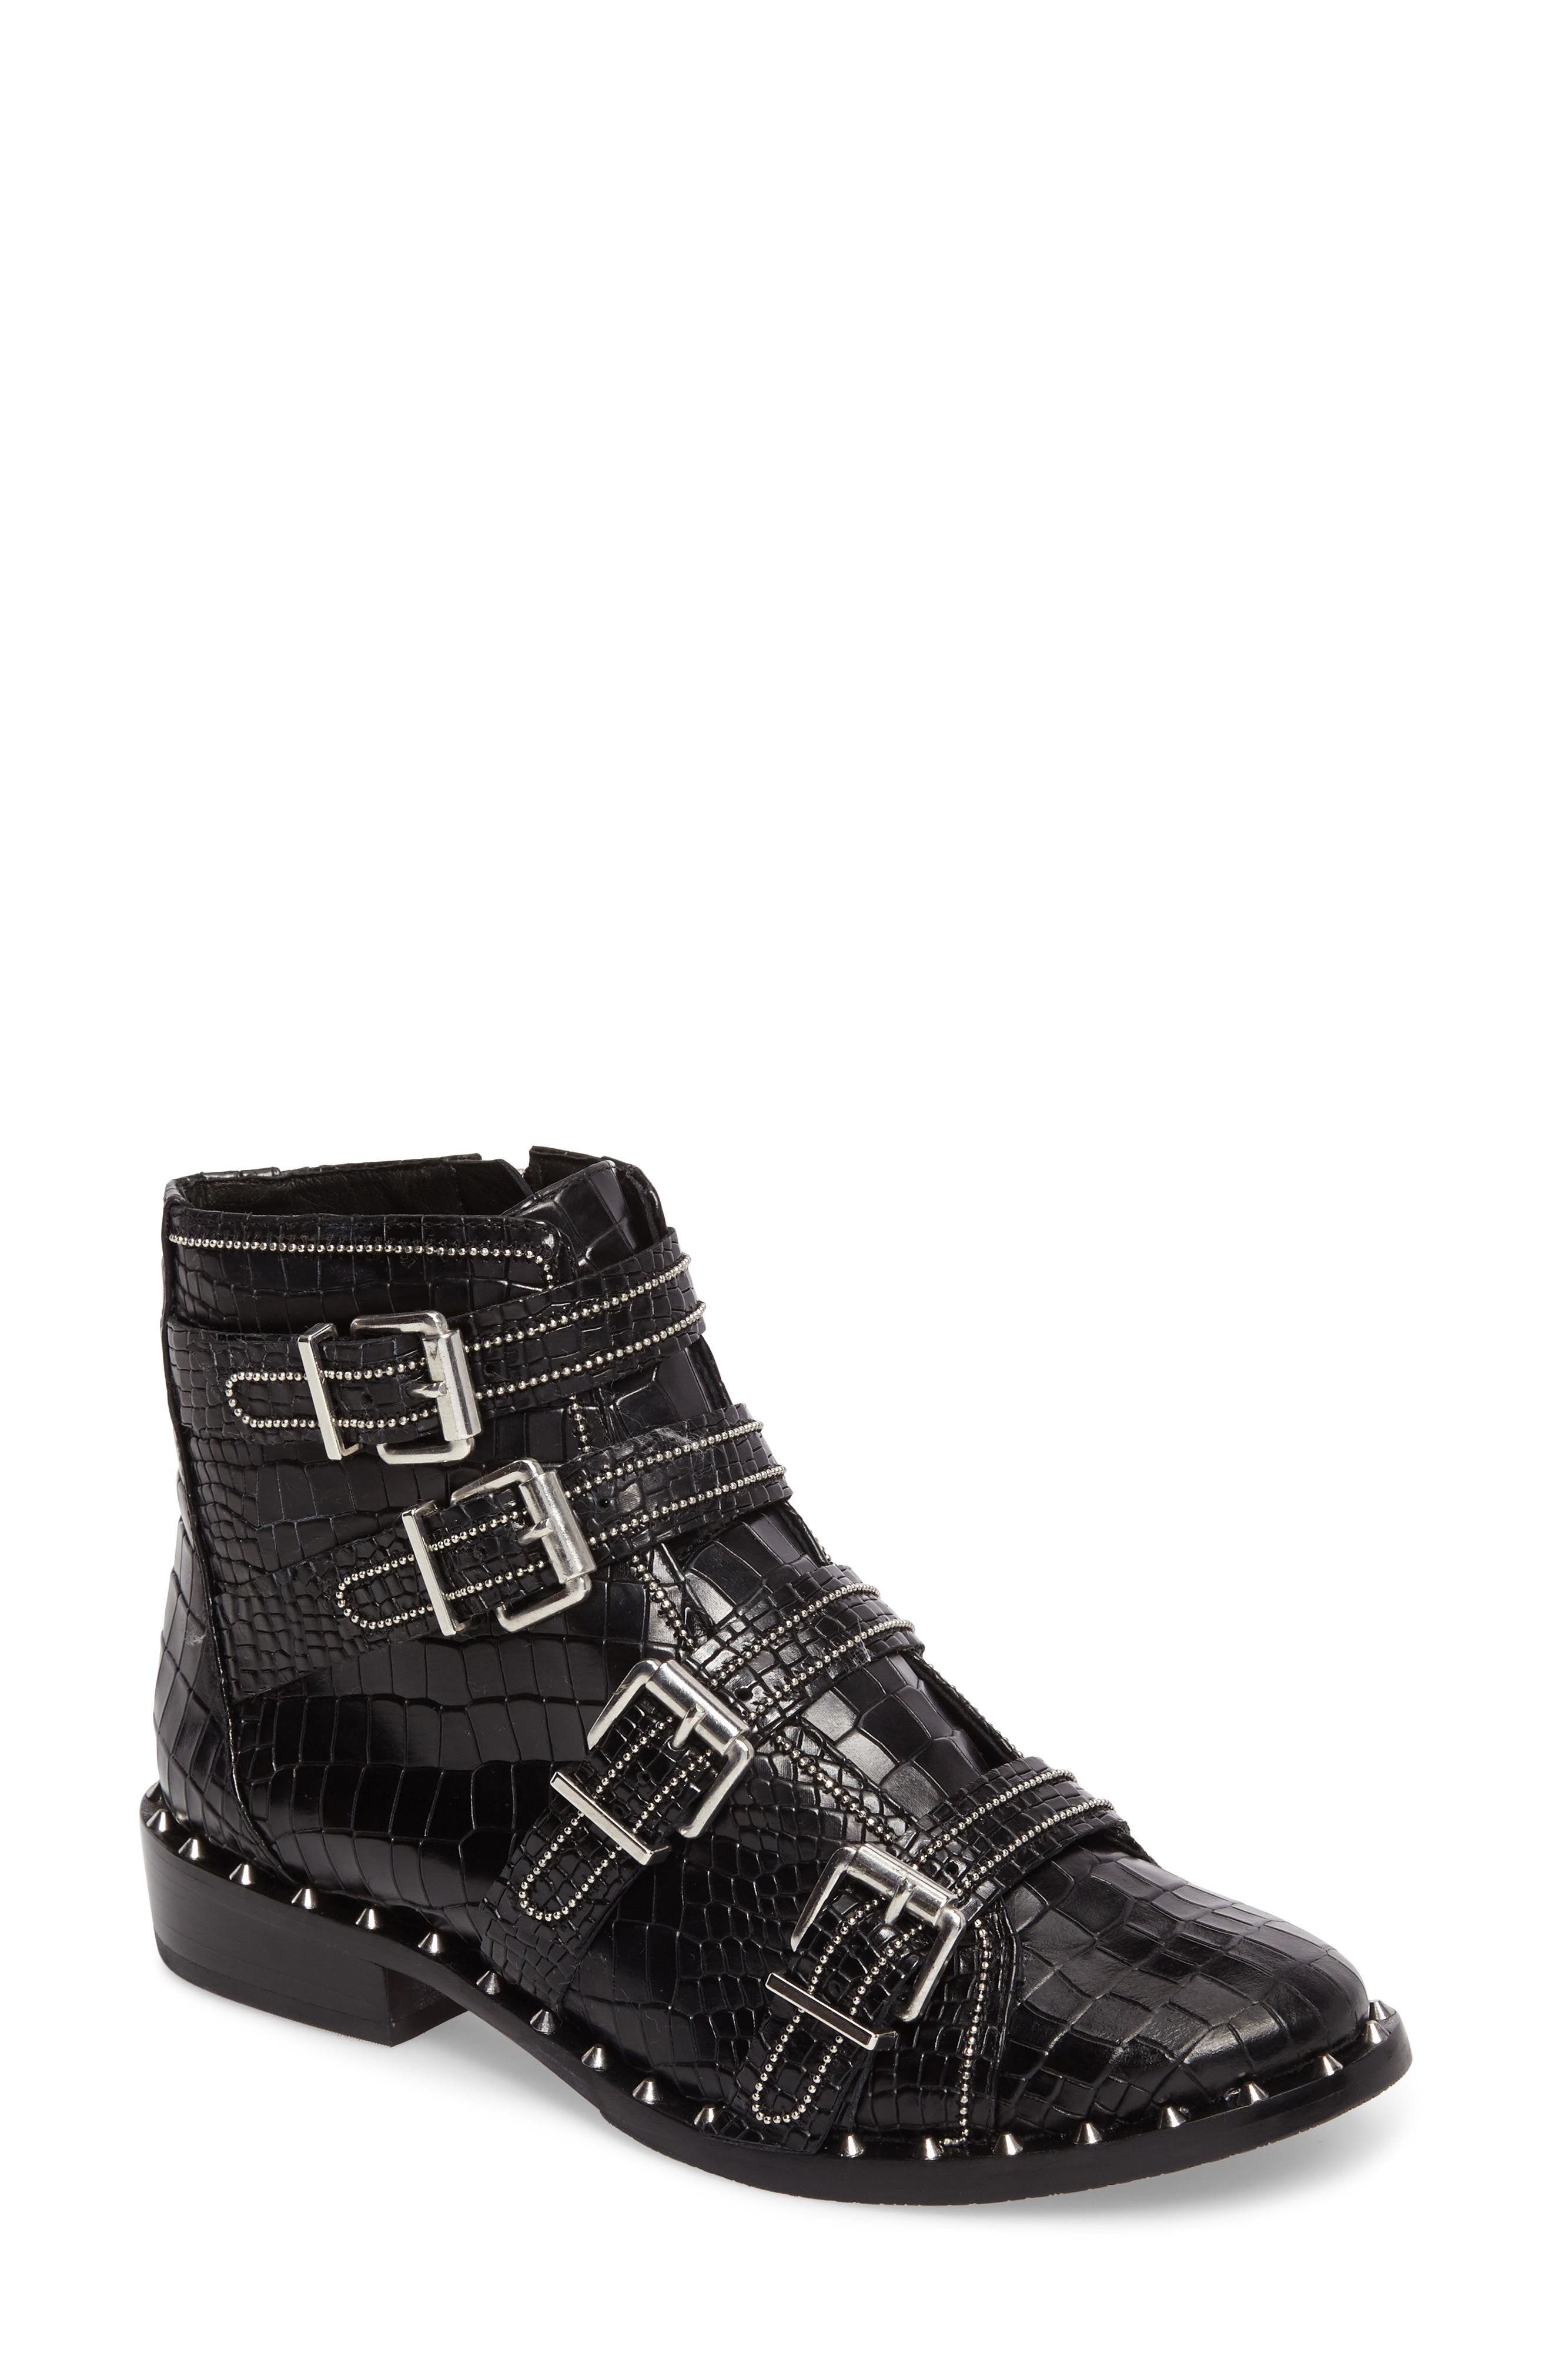 Alternate Image 1 Selected - Schutz Darcey Studded Croc Embossed Bootie (Women)